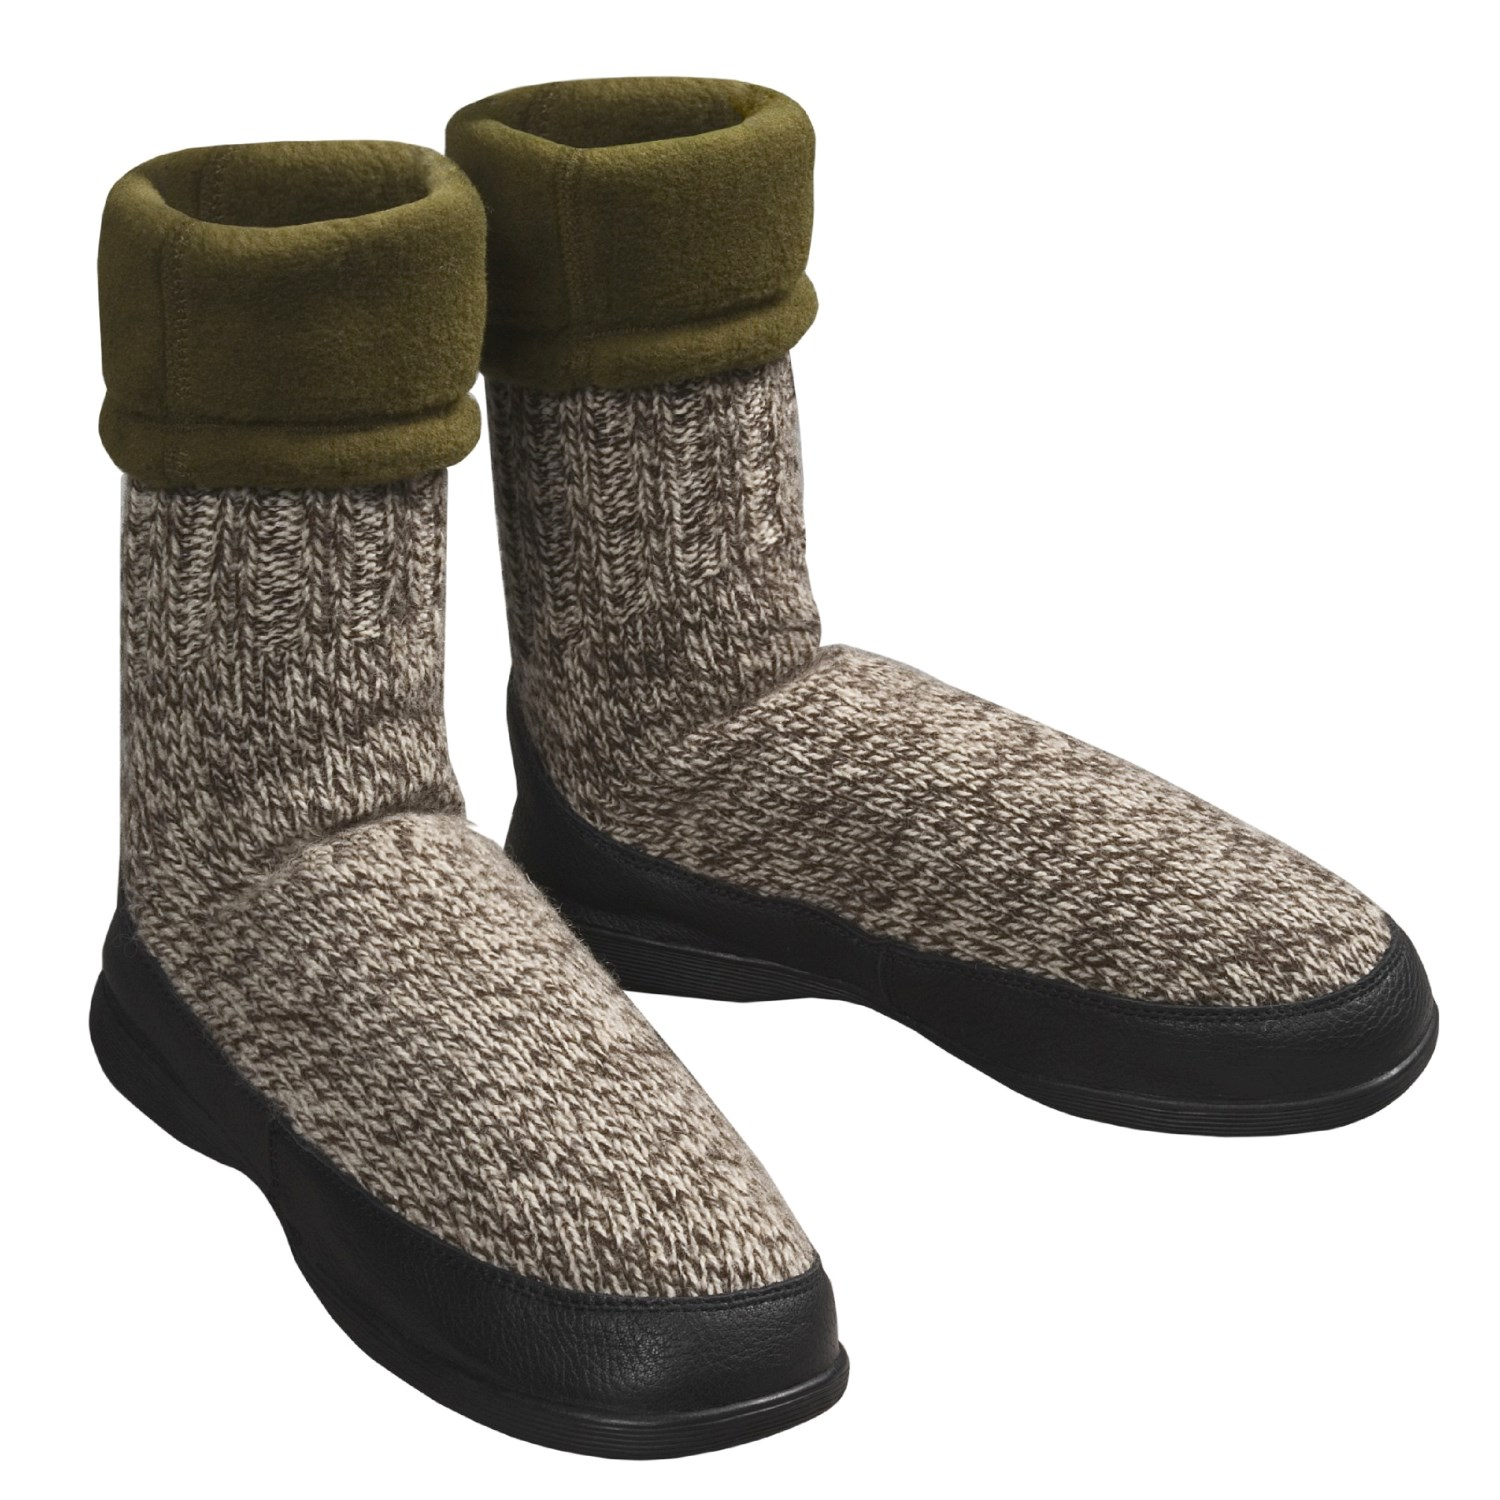 Men's Slippers - Warmth and comfort with men's slippers. Choose from a variety of slippers for men, including men's sheepskin lined slippers, leather slippers, pile-lined slippers and scuff northtercessbudh.cf from name brands like: UGG, The North Face, .